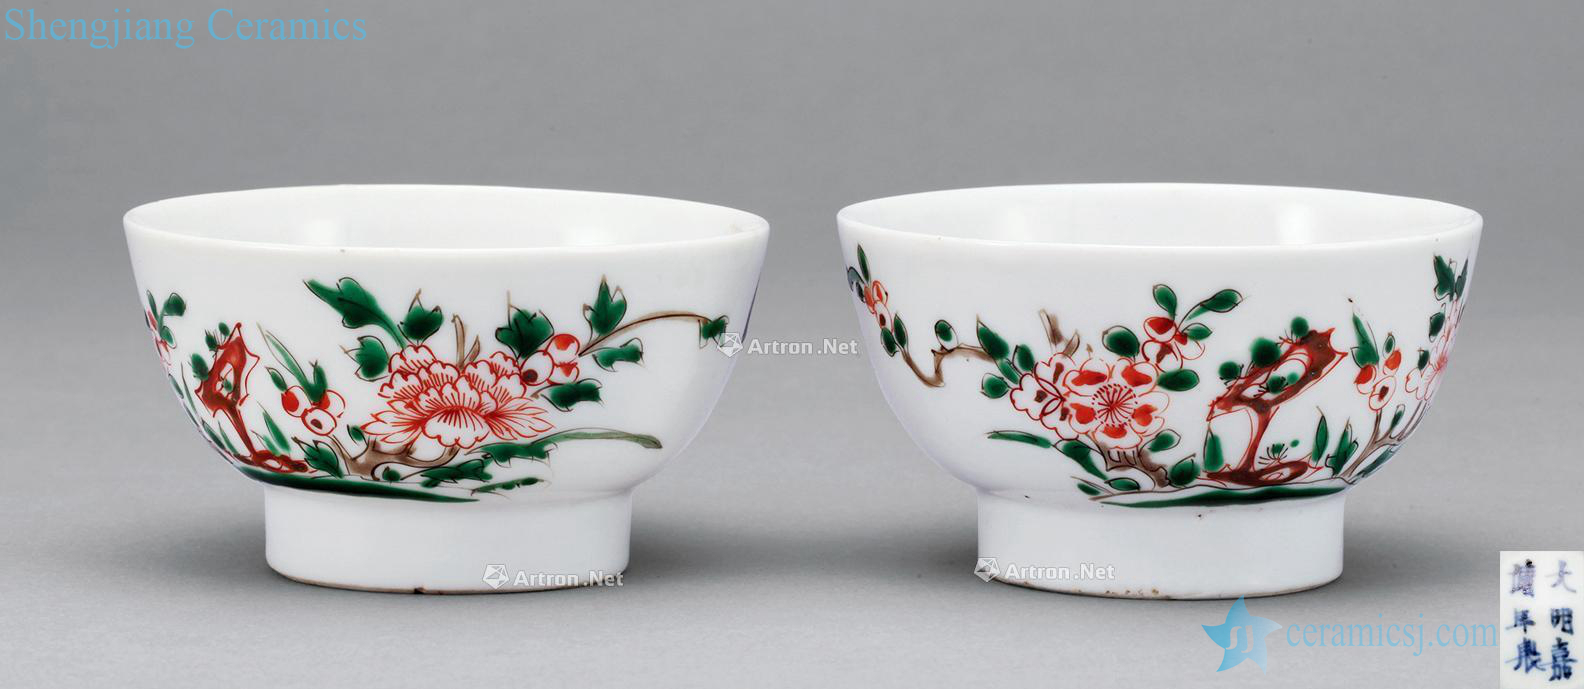 The qing emperor kangxi Colorful flowers and birds bowl (2)